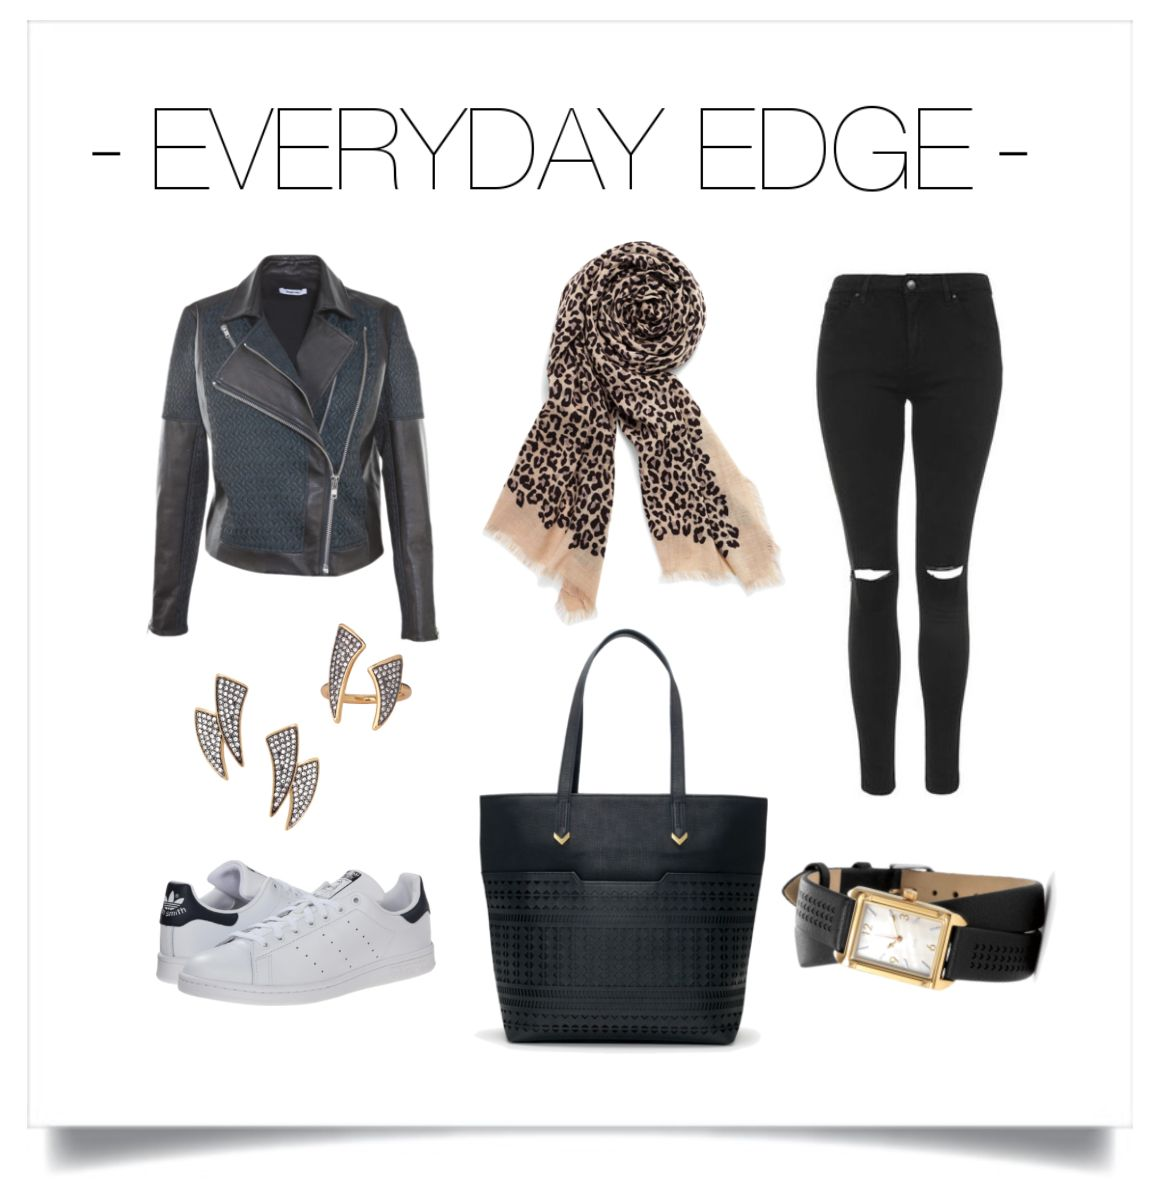 For the edgy gal...I am so eclectic!